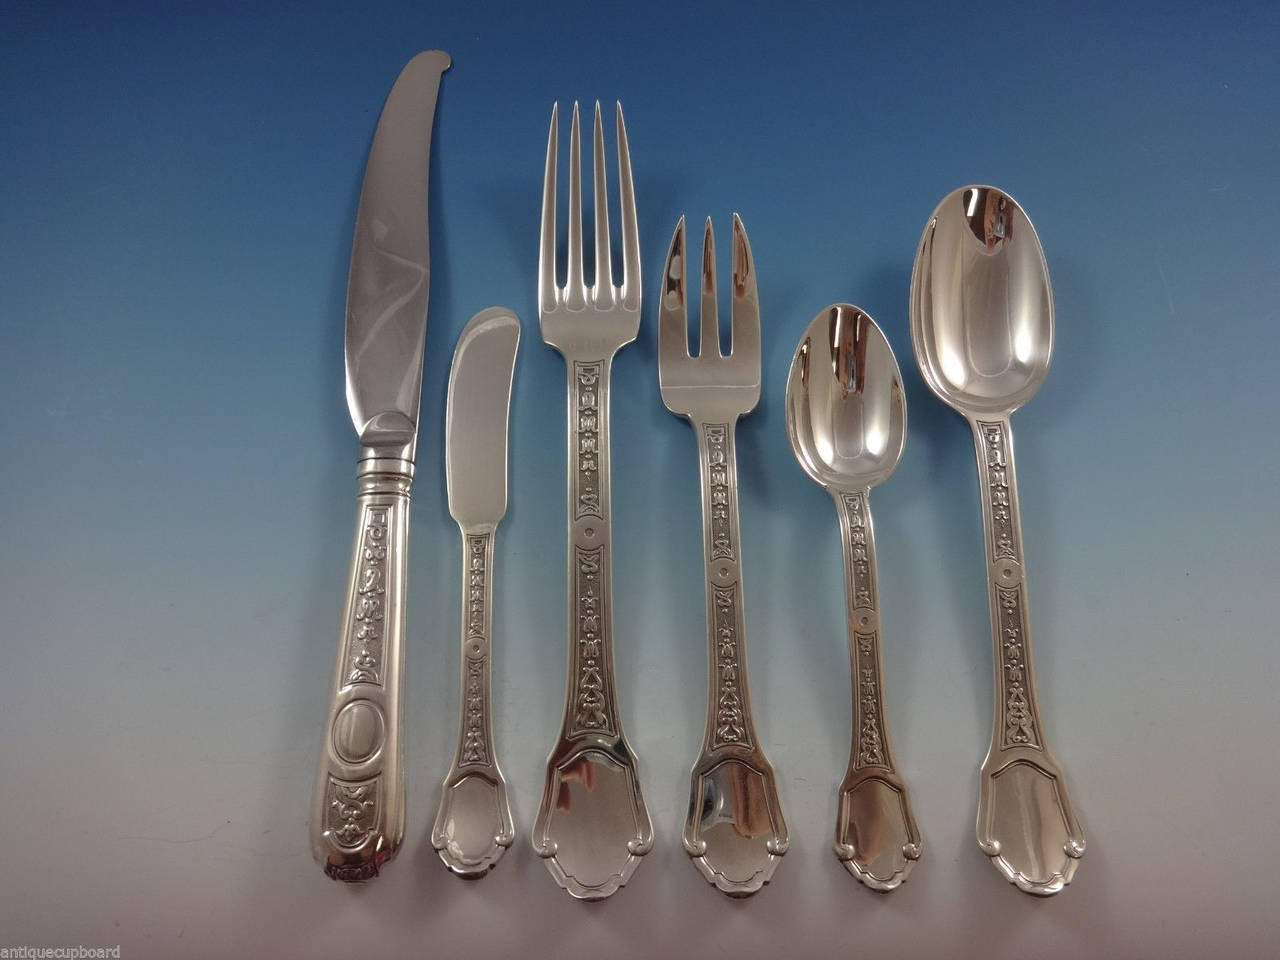 Versailles by Tetard Freres French sterling silver flatware set, 70 pieces. This set includes: 11 Dinner Knives, 9